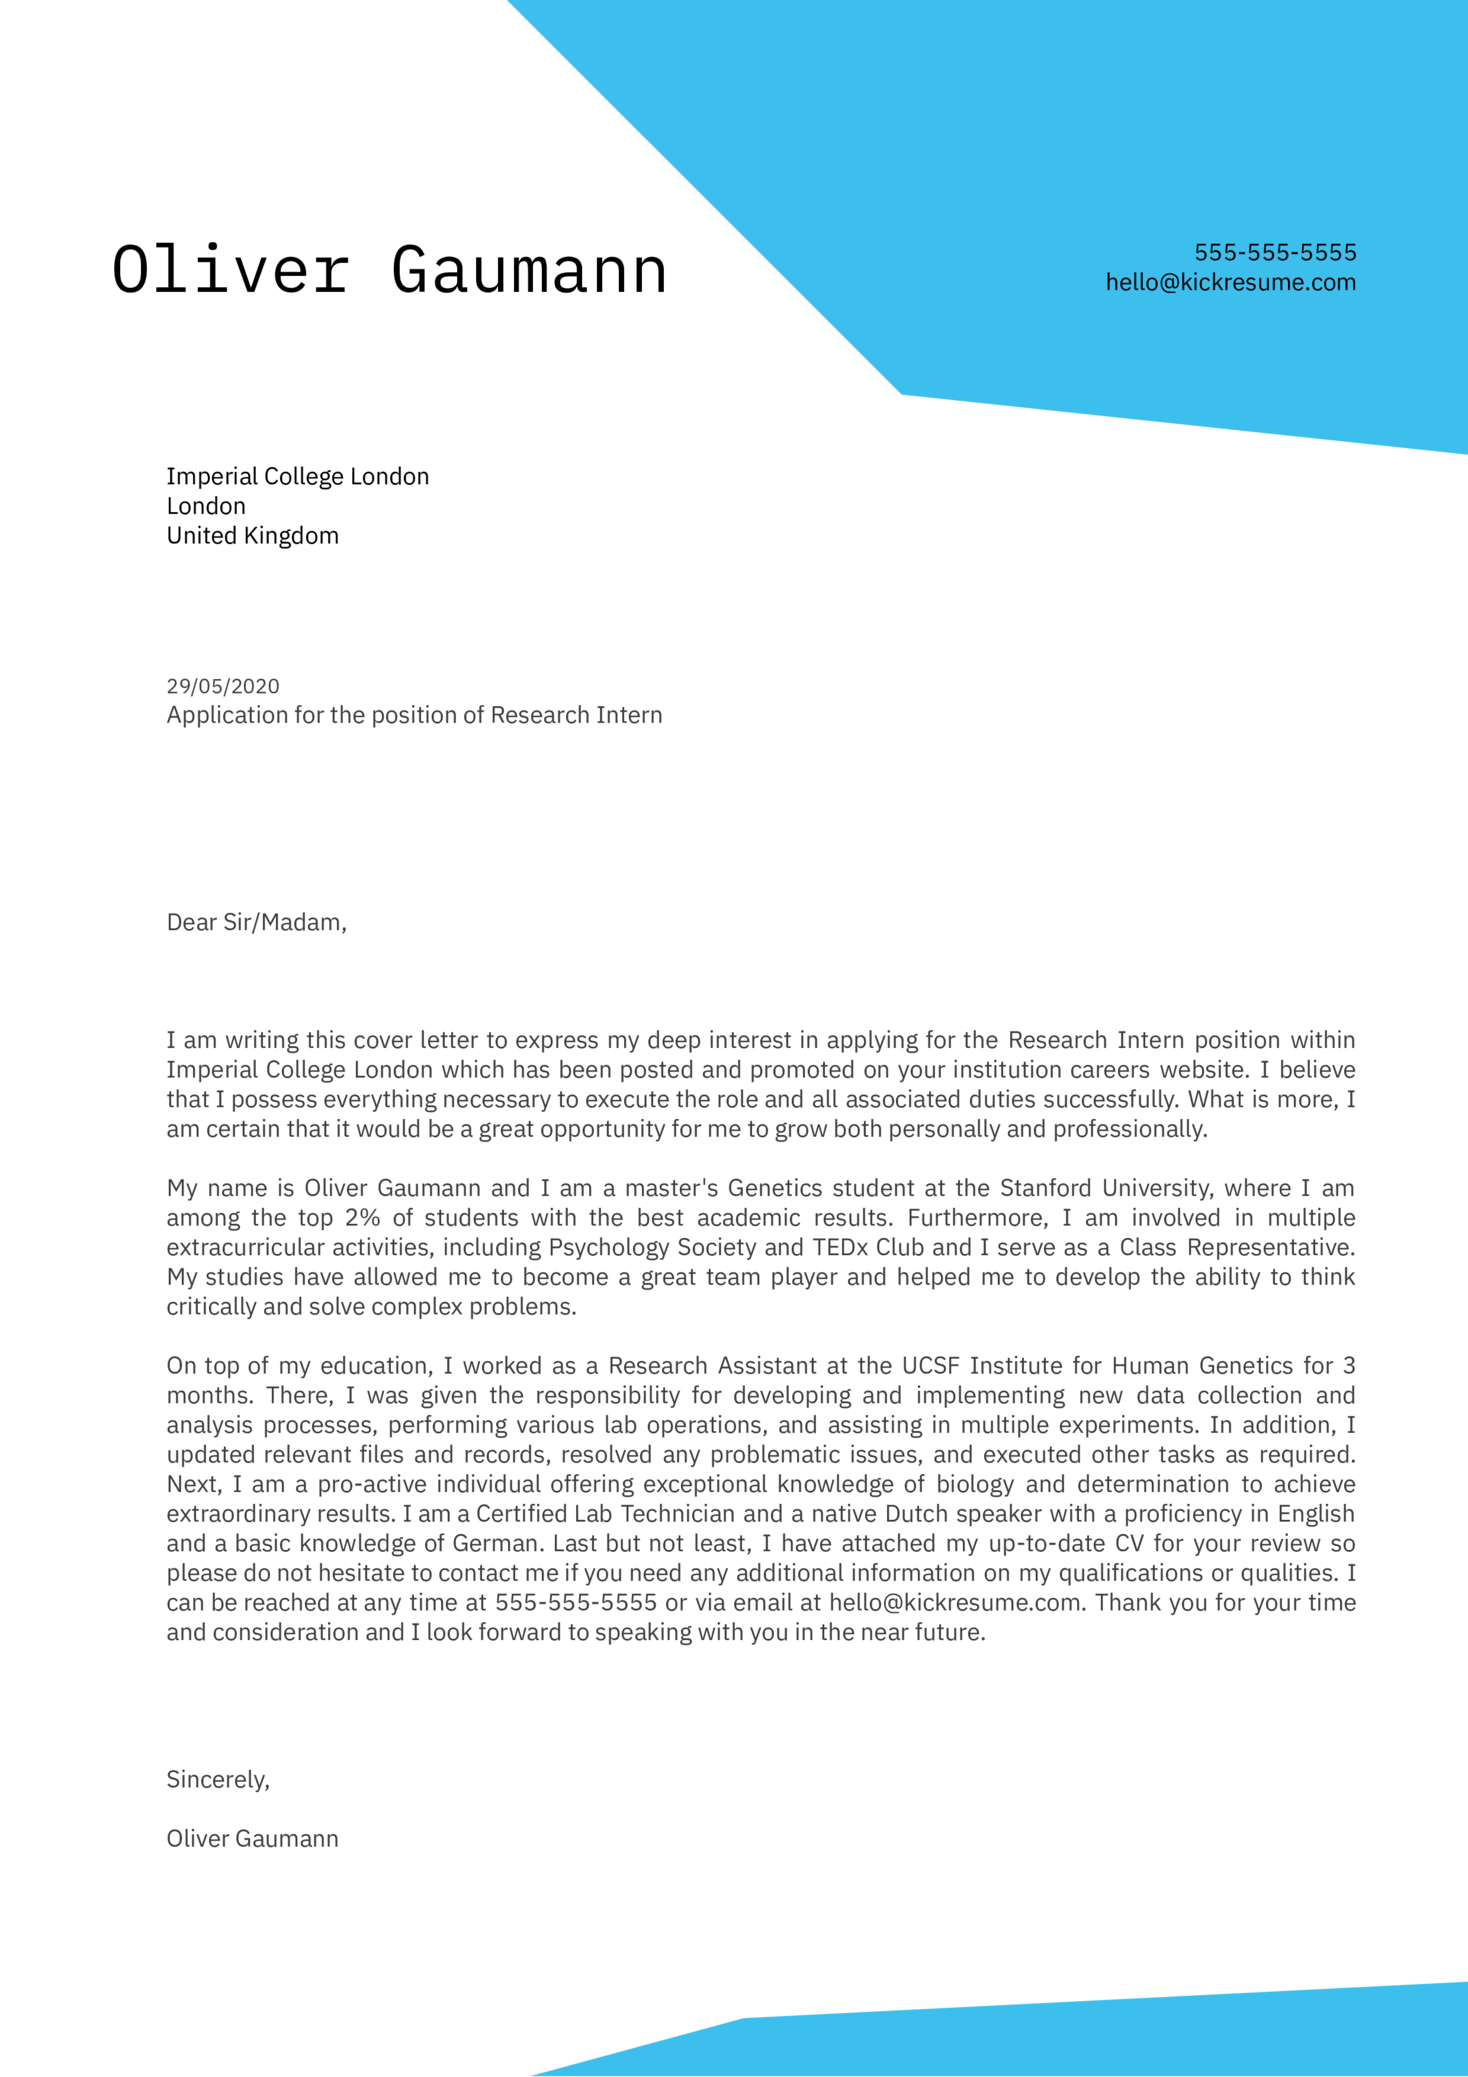 Academic Cover Letter Example